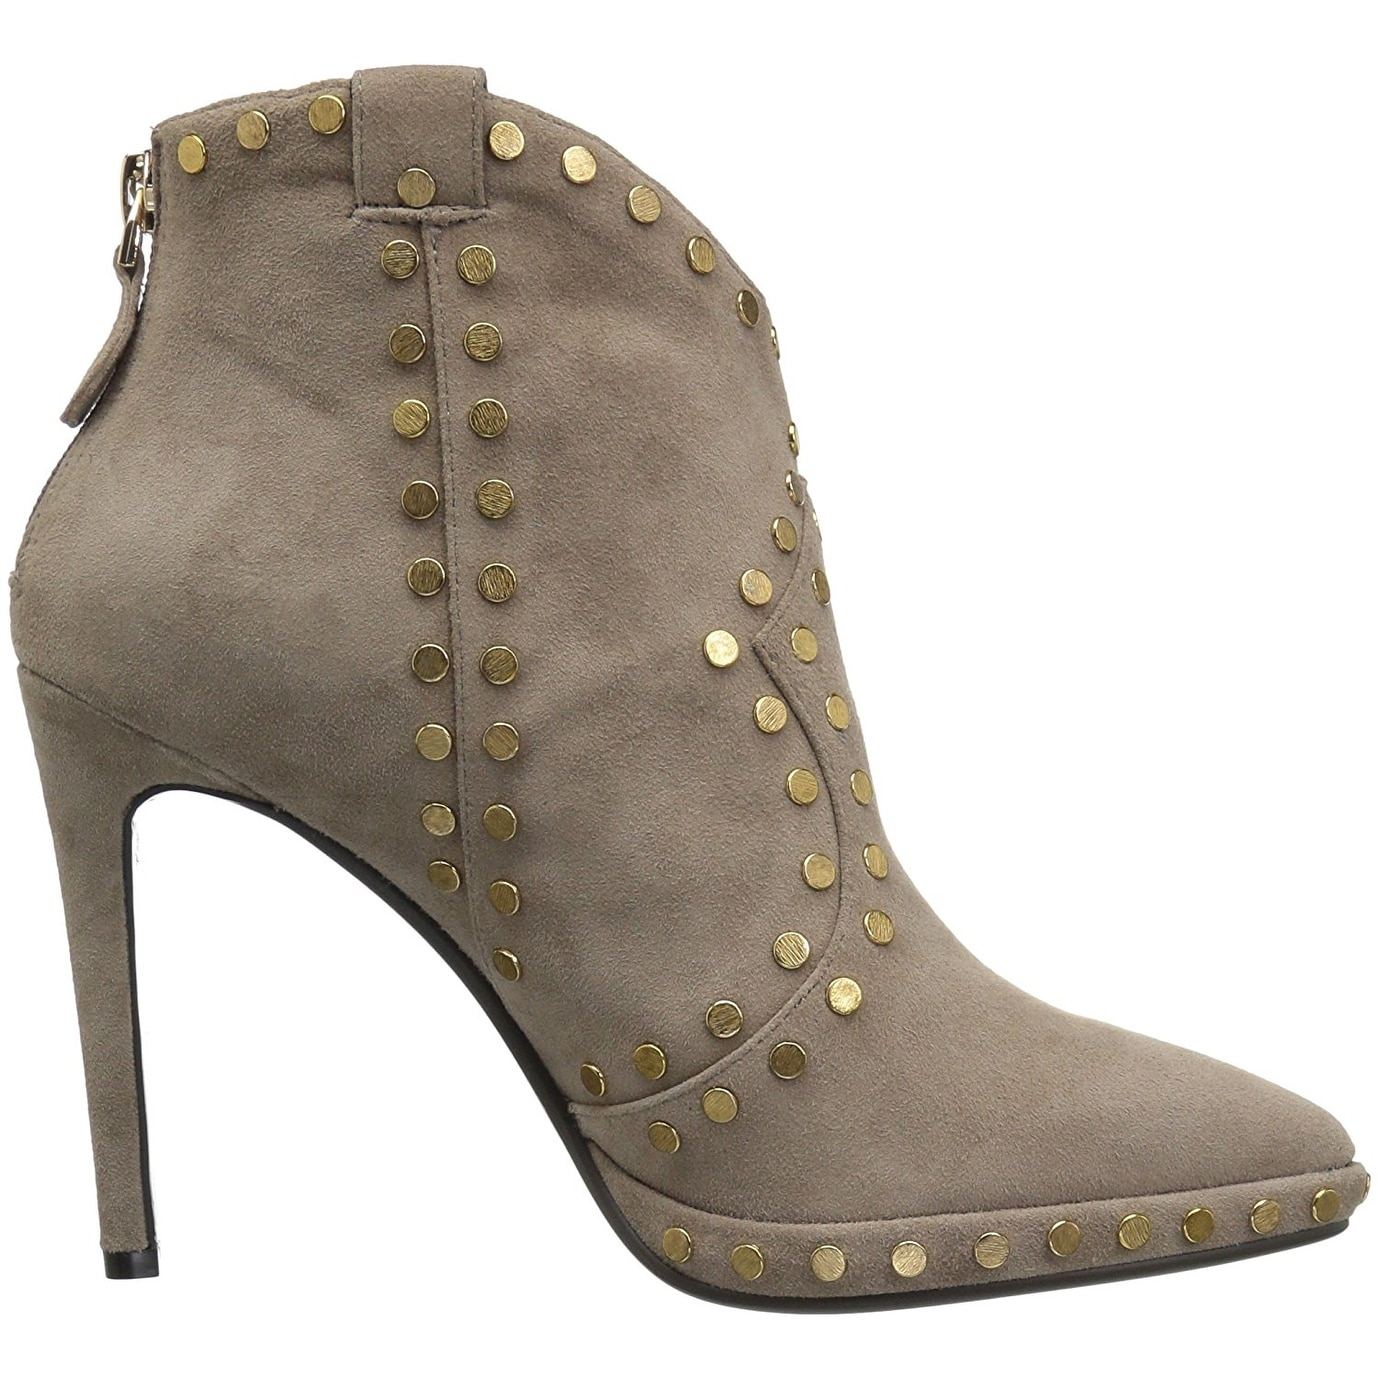 e2b39312e9b Shop Lola Cruz Womens 113z30bk Suede Pointed Toe Ankle Fashion Boots -  arena sand - 8.5 - Free Shipping Today - Overstock - 21942739